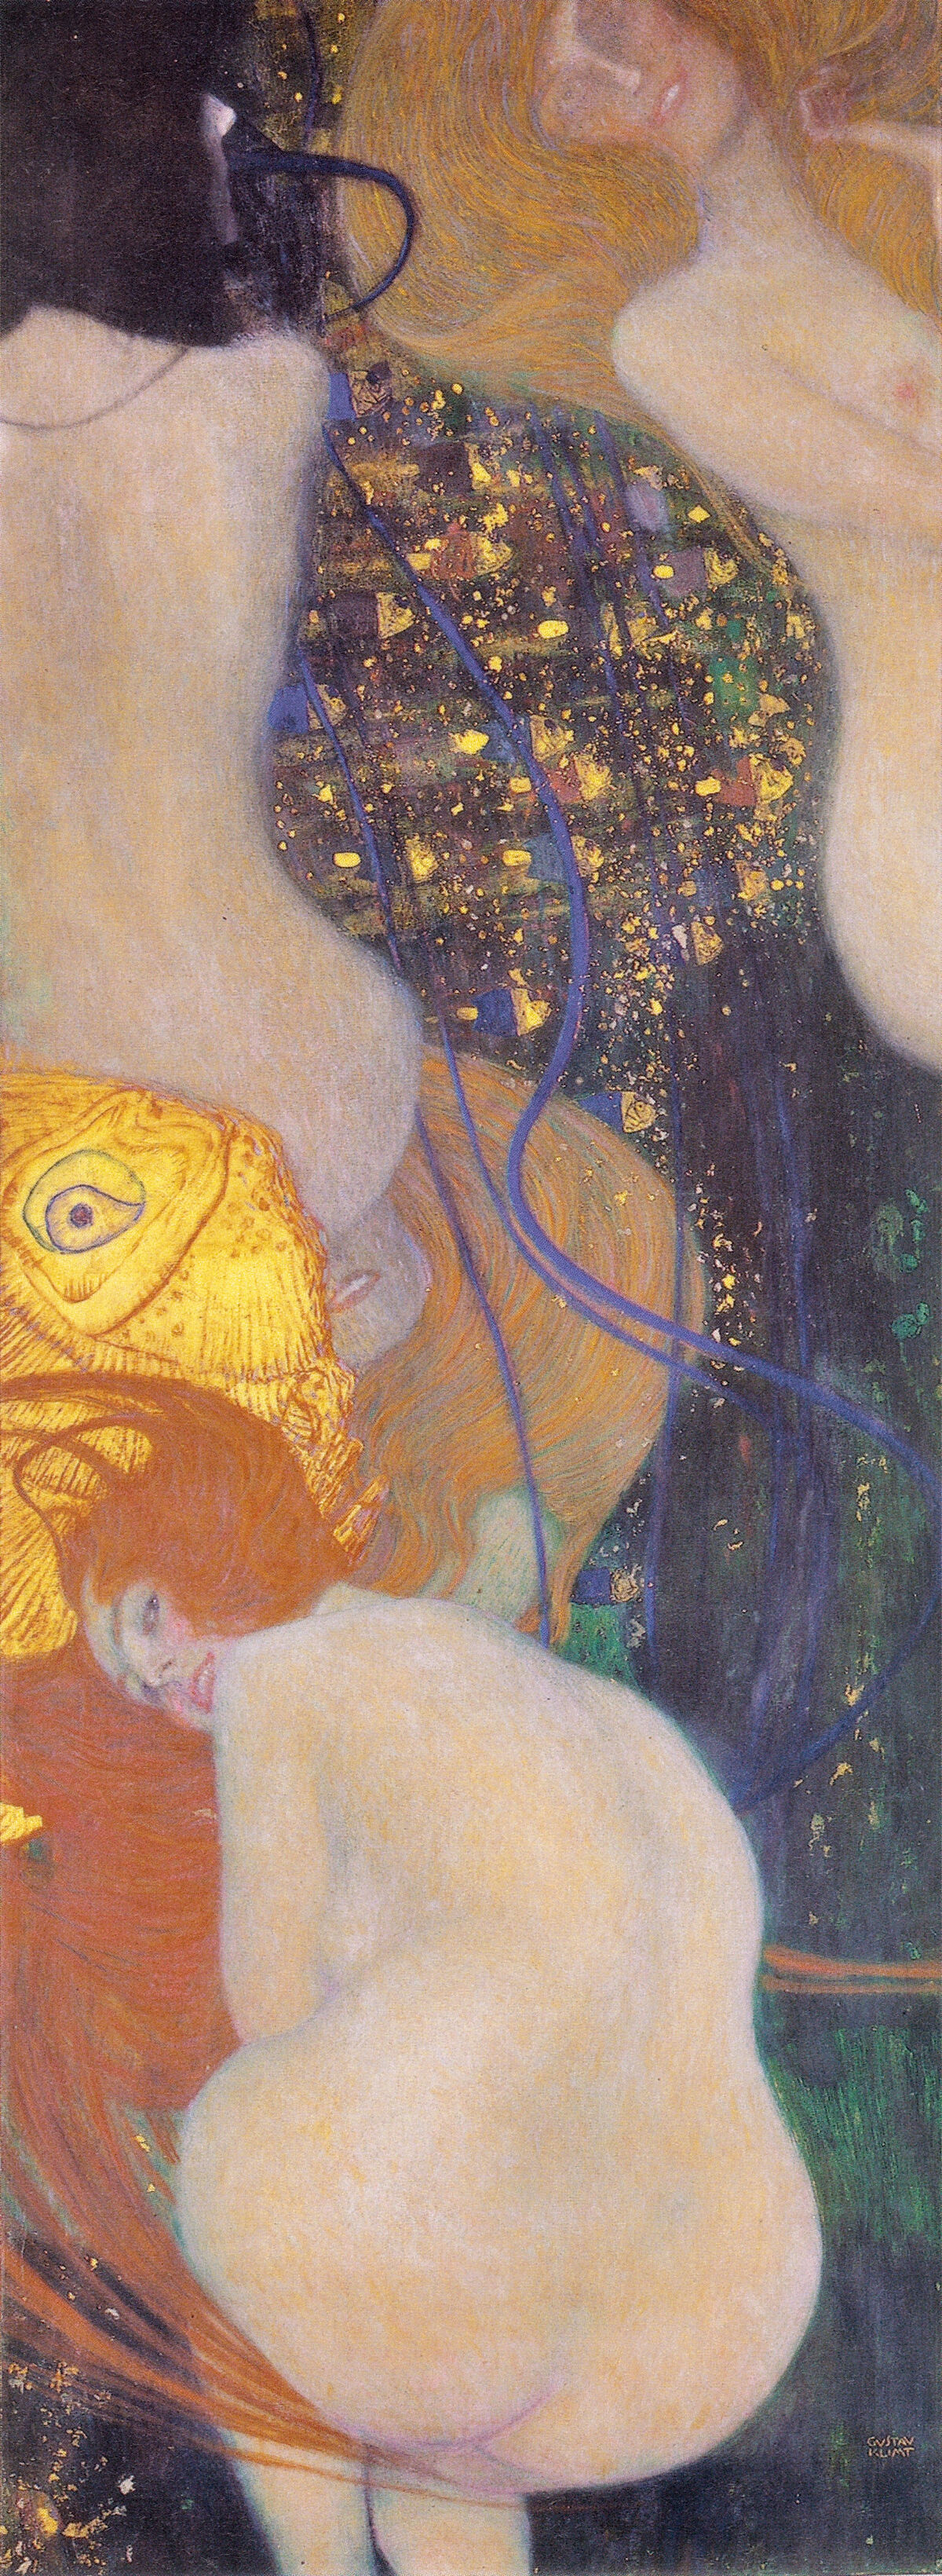 Gustav Klimt, Goldfish, 1901–02. Image via Wikimedia Commons.